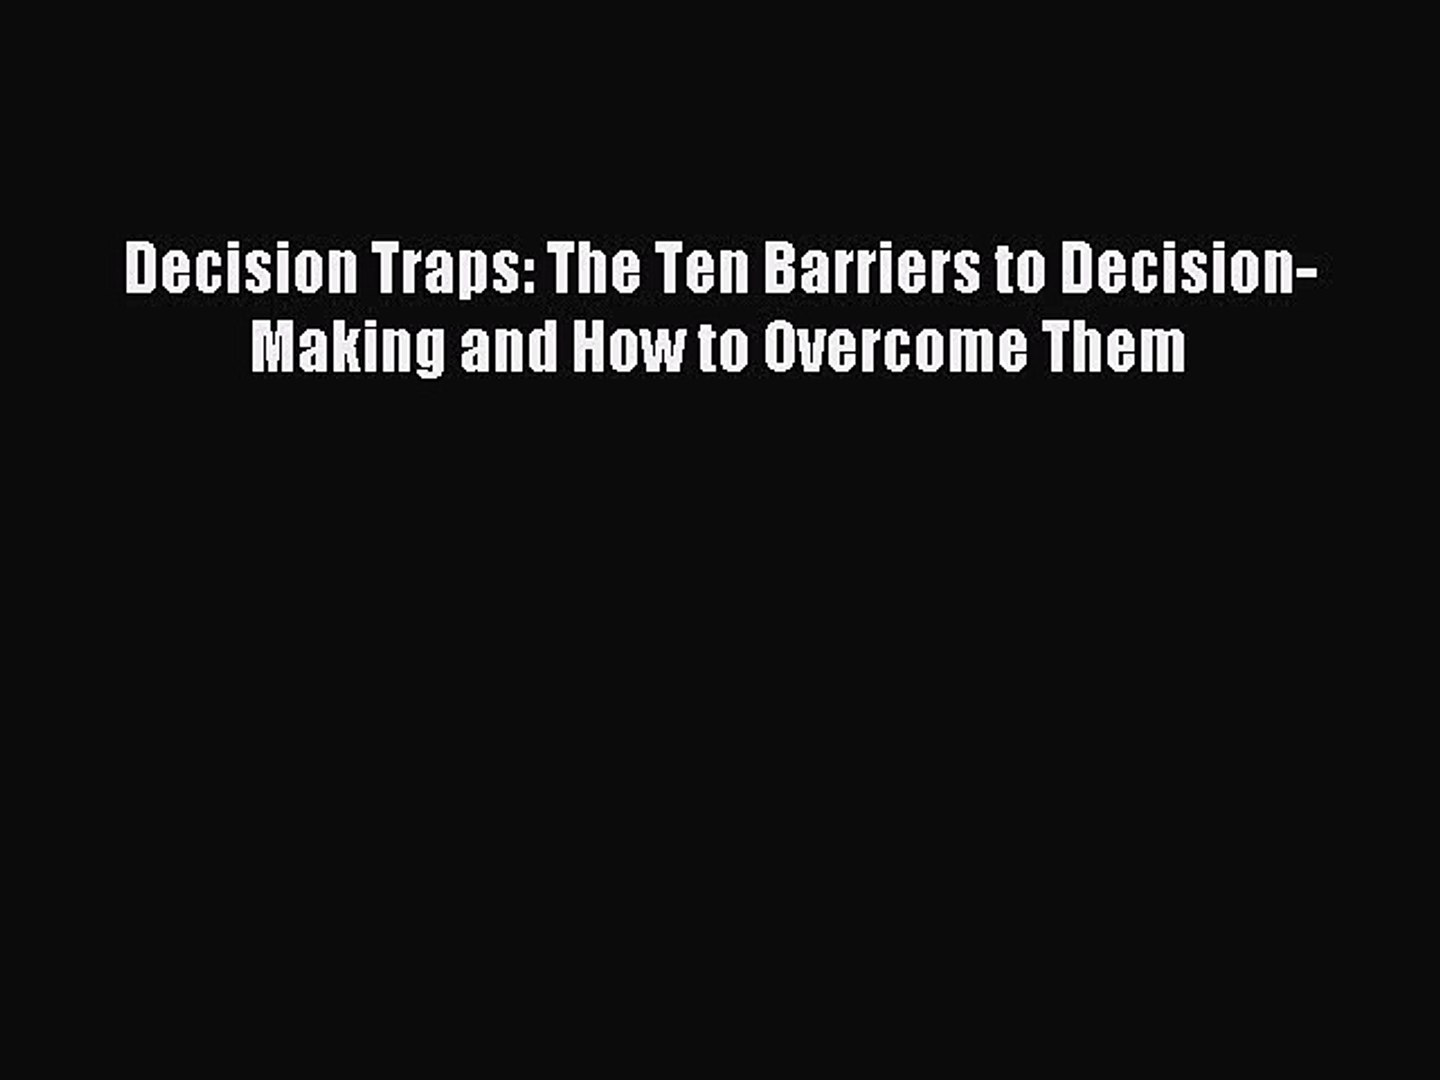 Read Decision Traps: The Ten Barriers to Decision-Making and How to Overcome Them Ebook Free